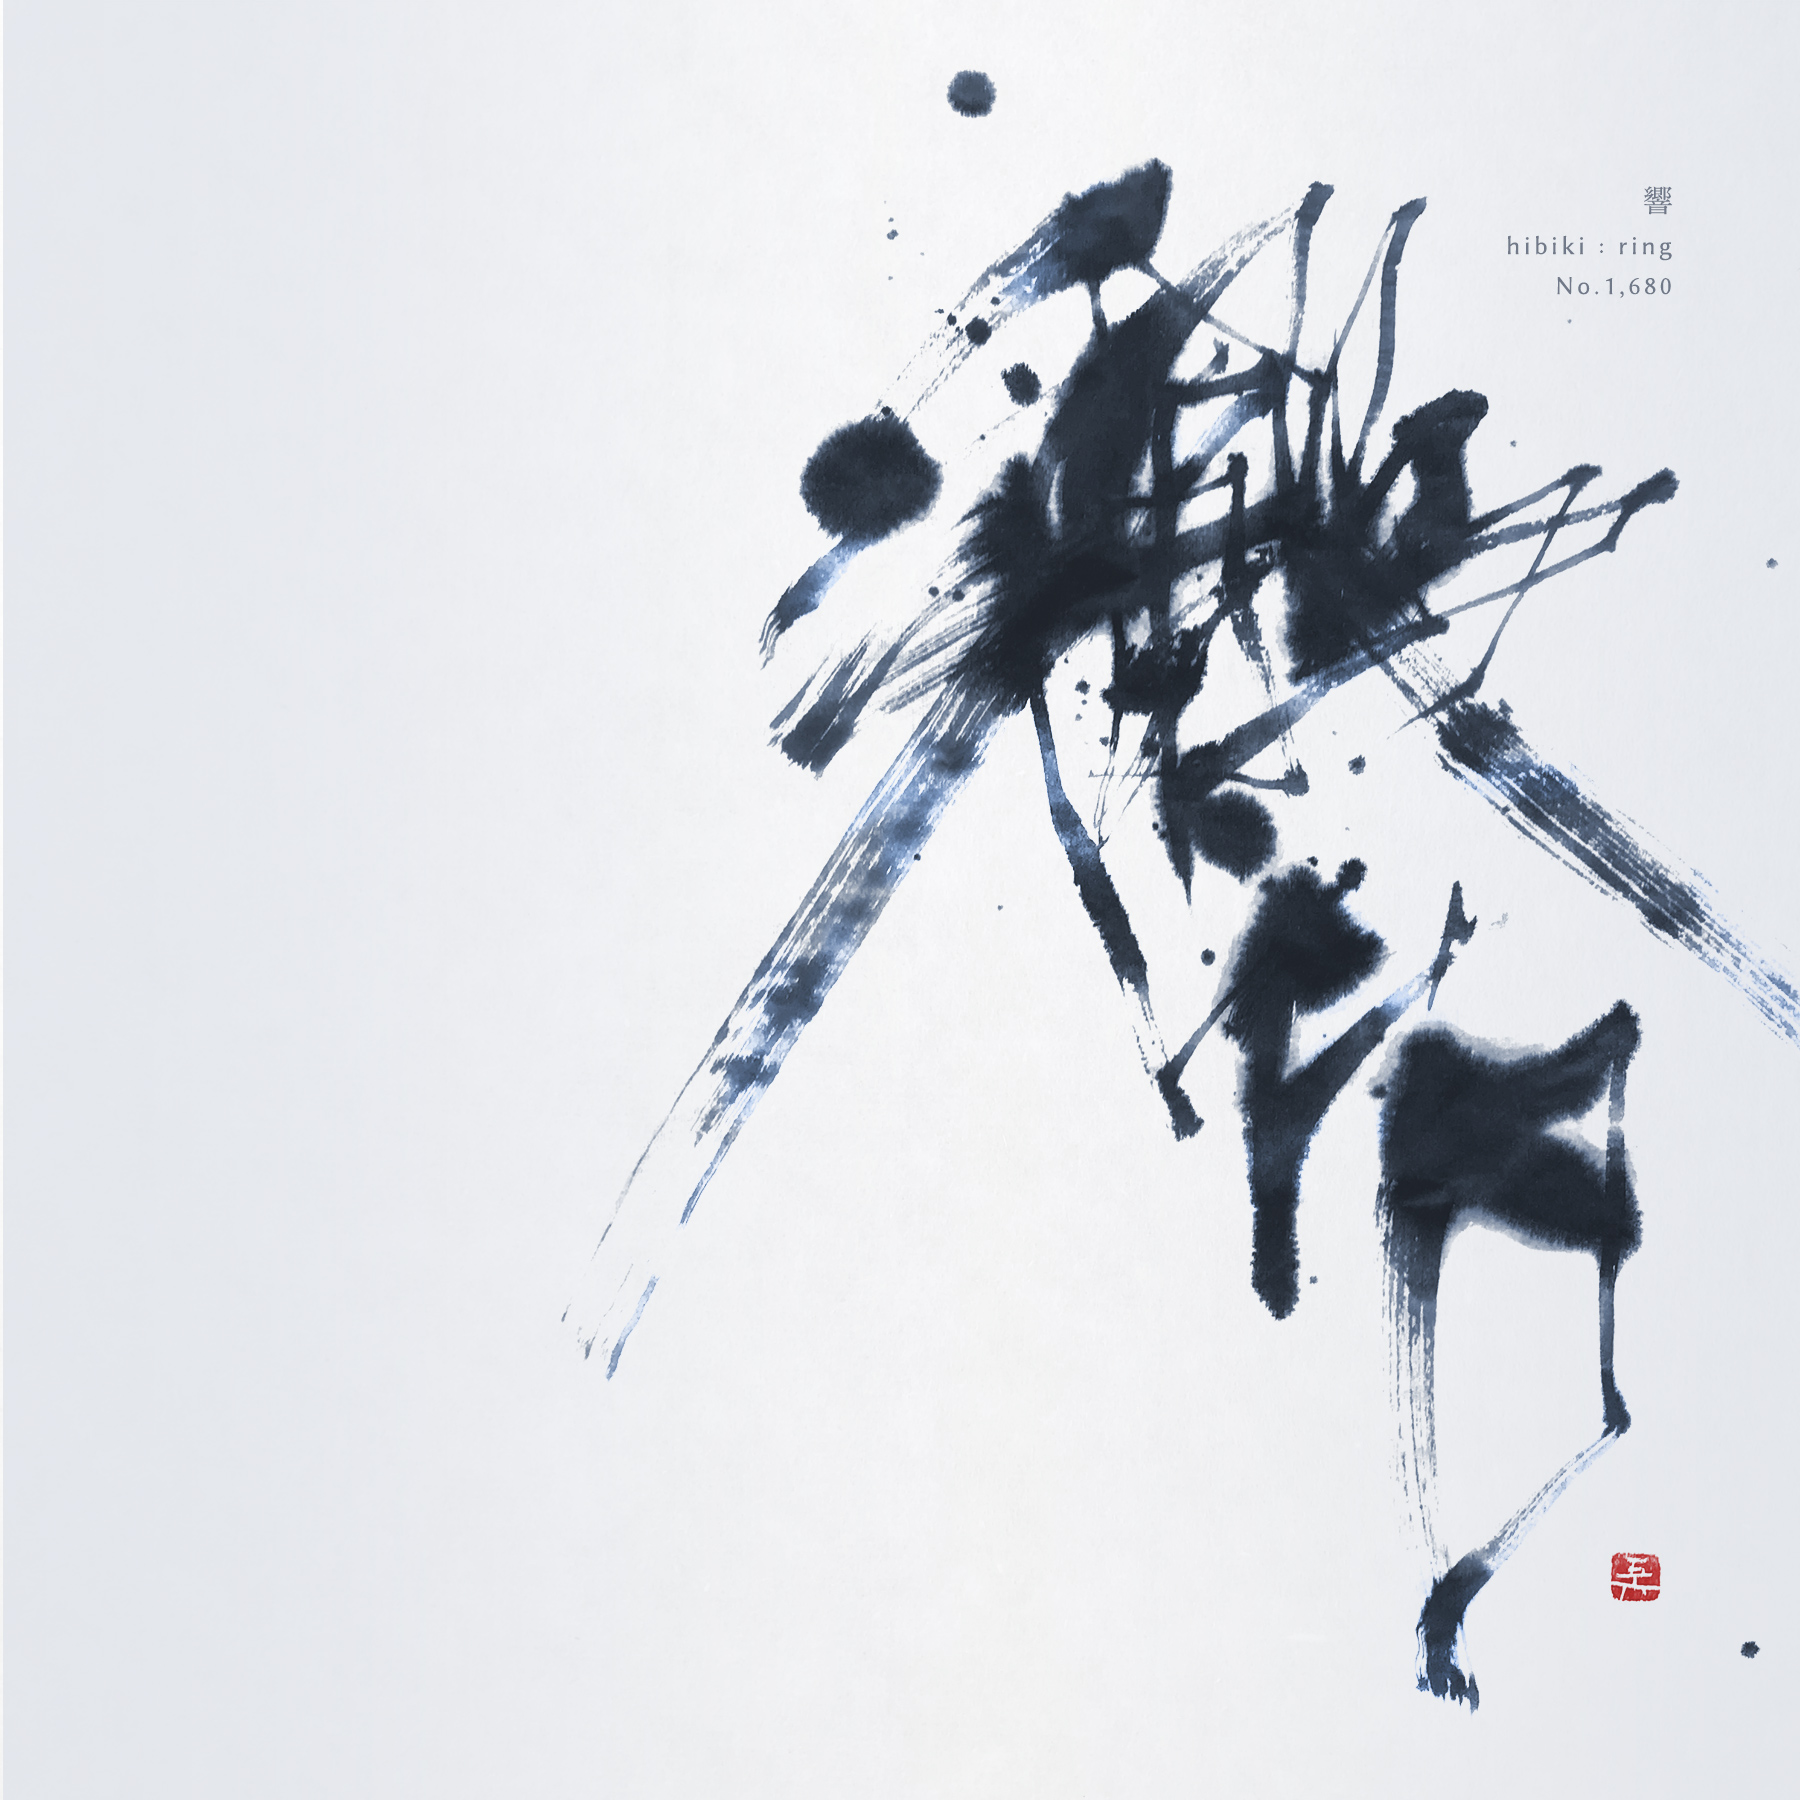 響 | ring 書道作品 japaneseart japanese calligraphy 書家 田川悟郎 Goroh Tagawa